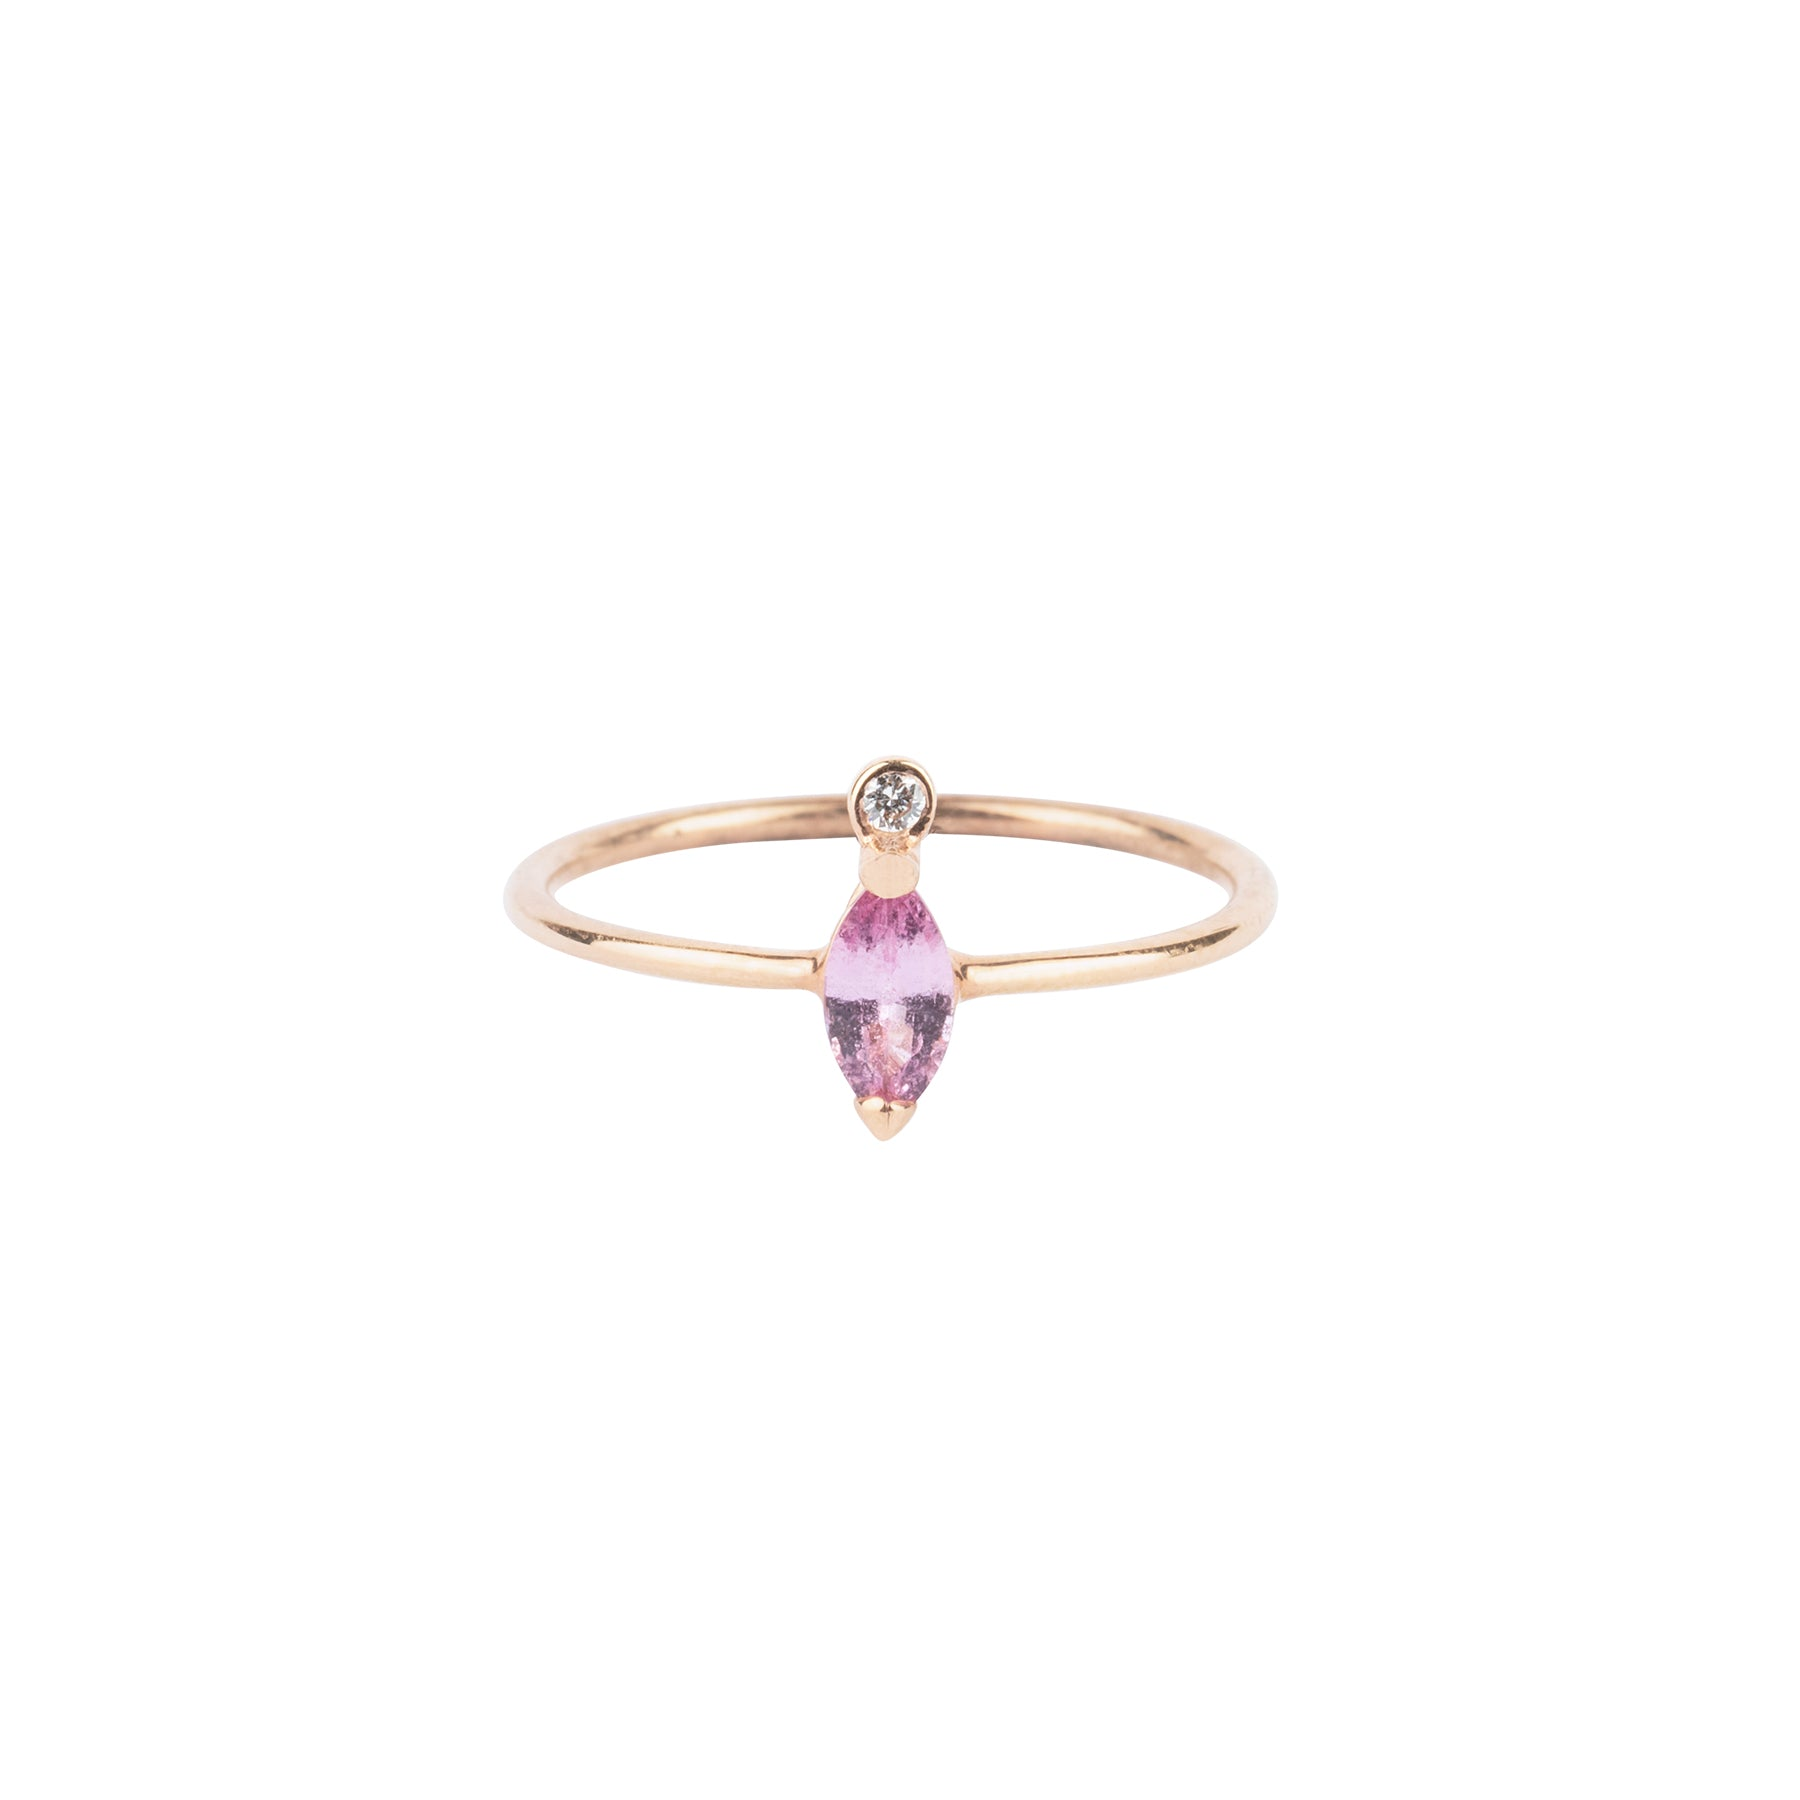 Gem Candy Pink Sapphire Marquise Diamond Tip Ring